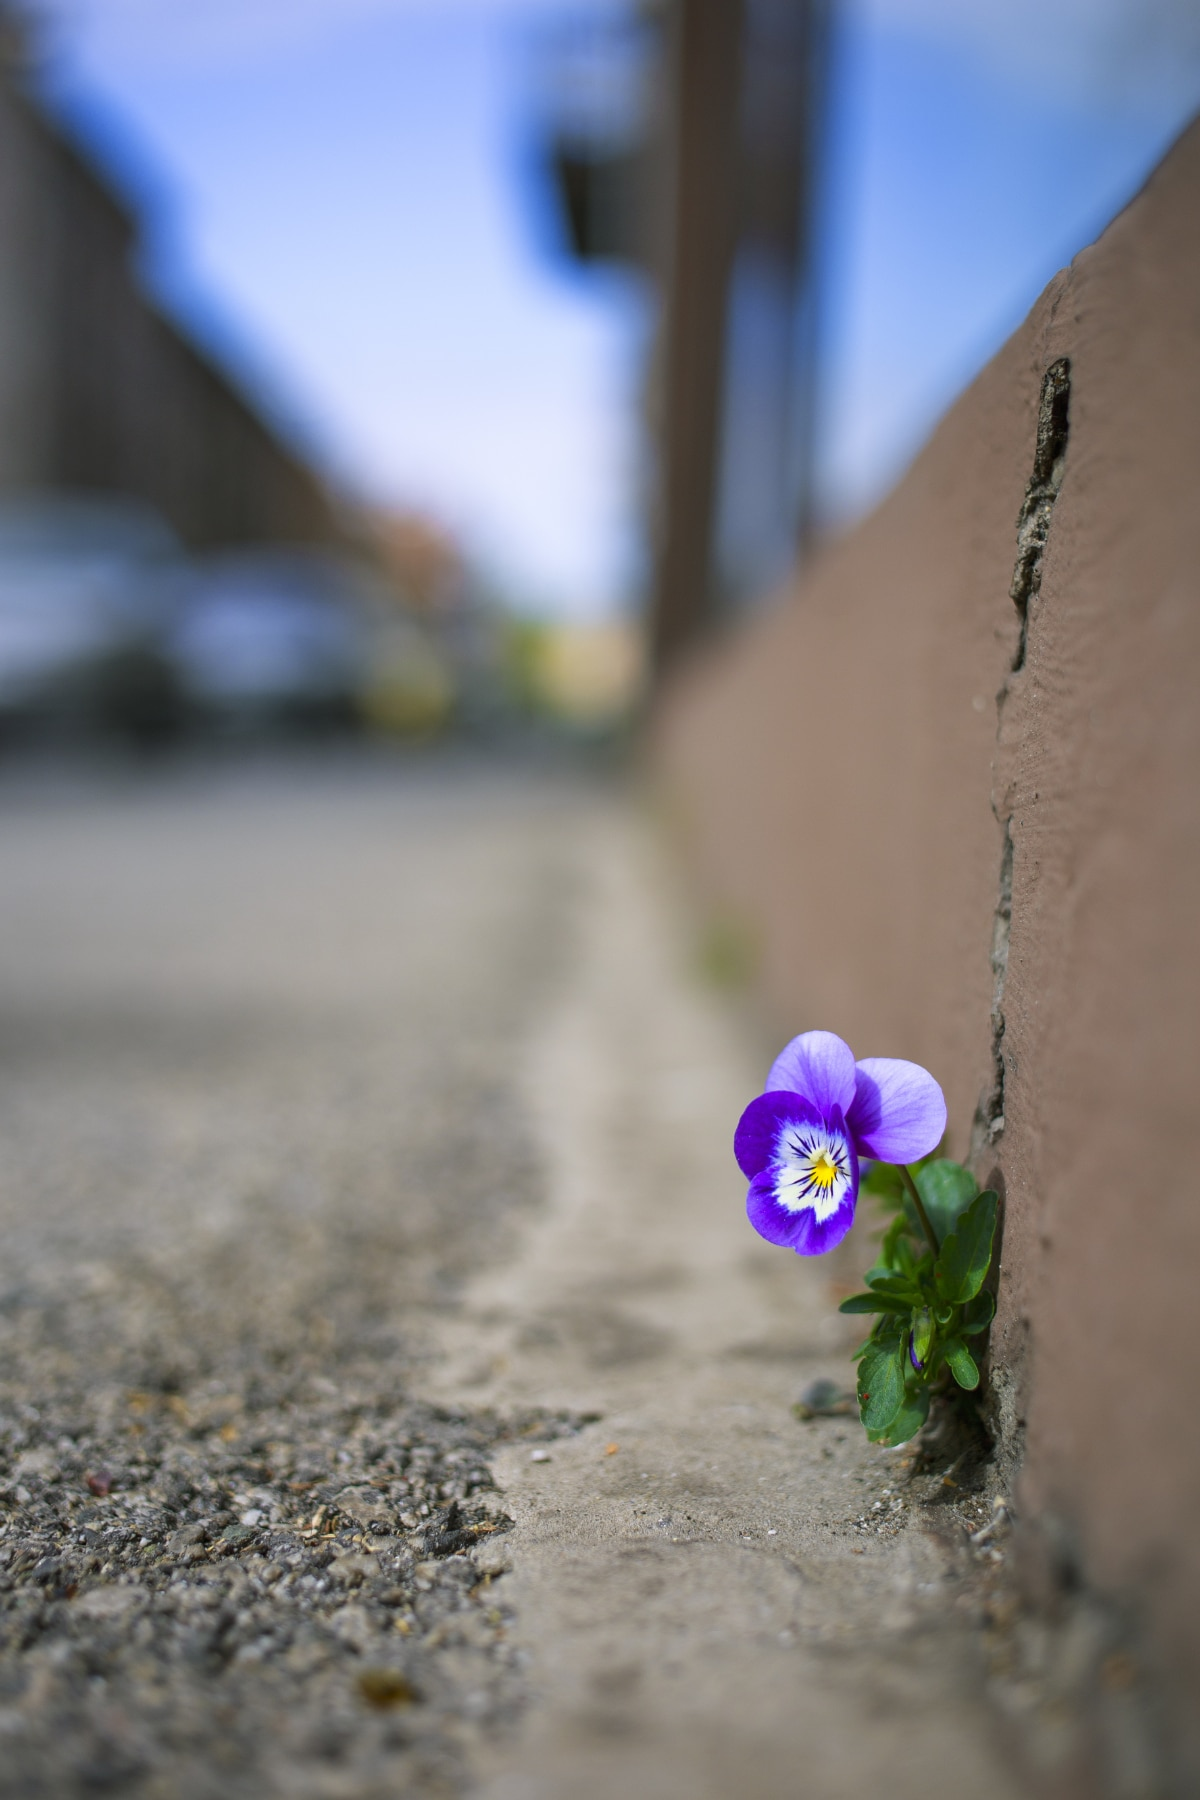 Pansies Growing in a Strange Place